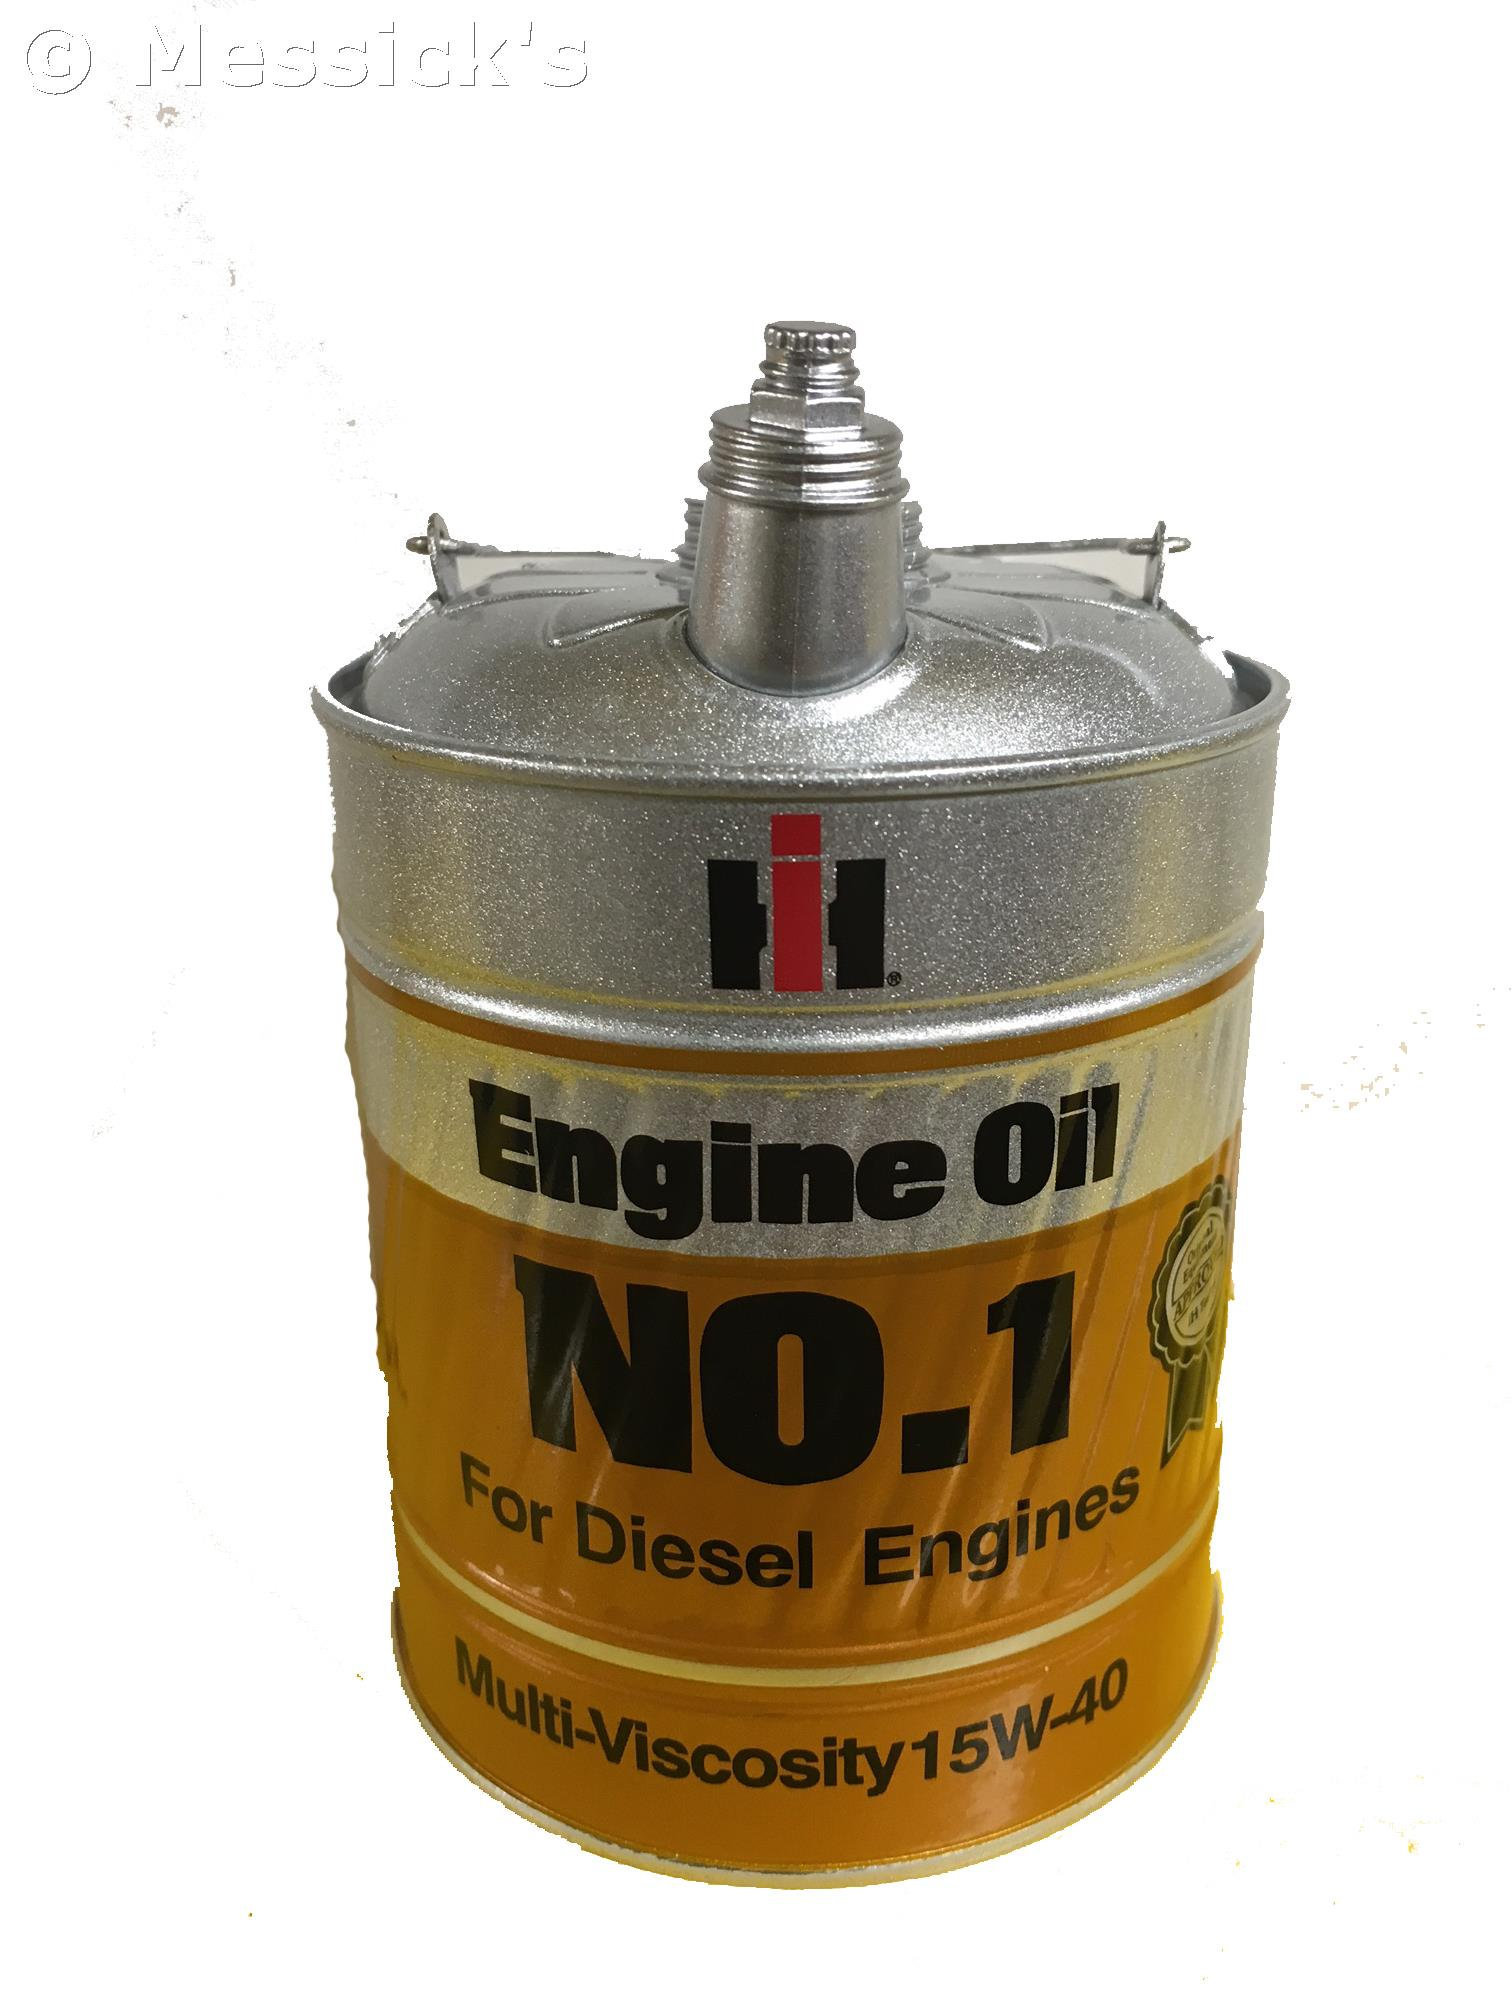 Case ih new holland case ih engine oil drum coin bank for Case of motor oil prices